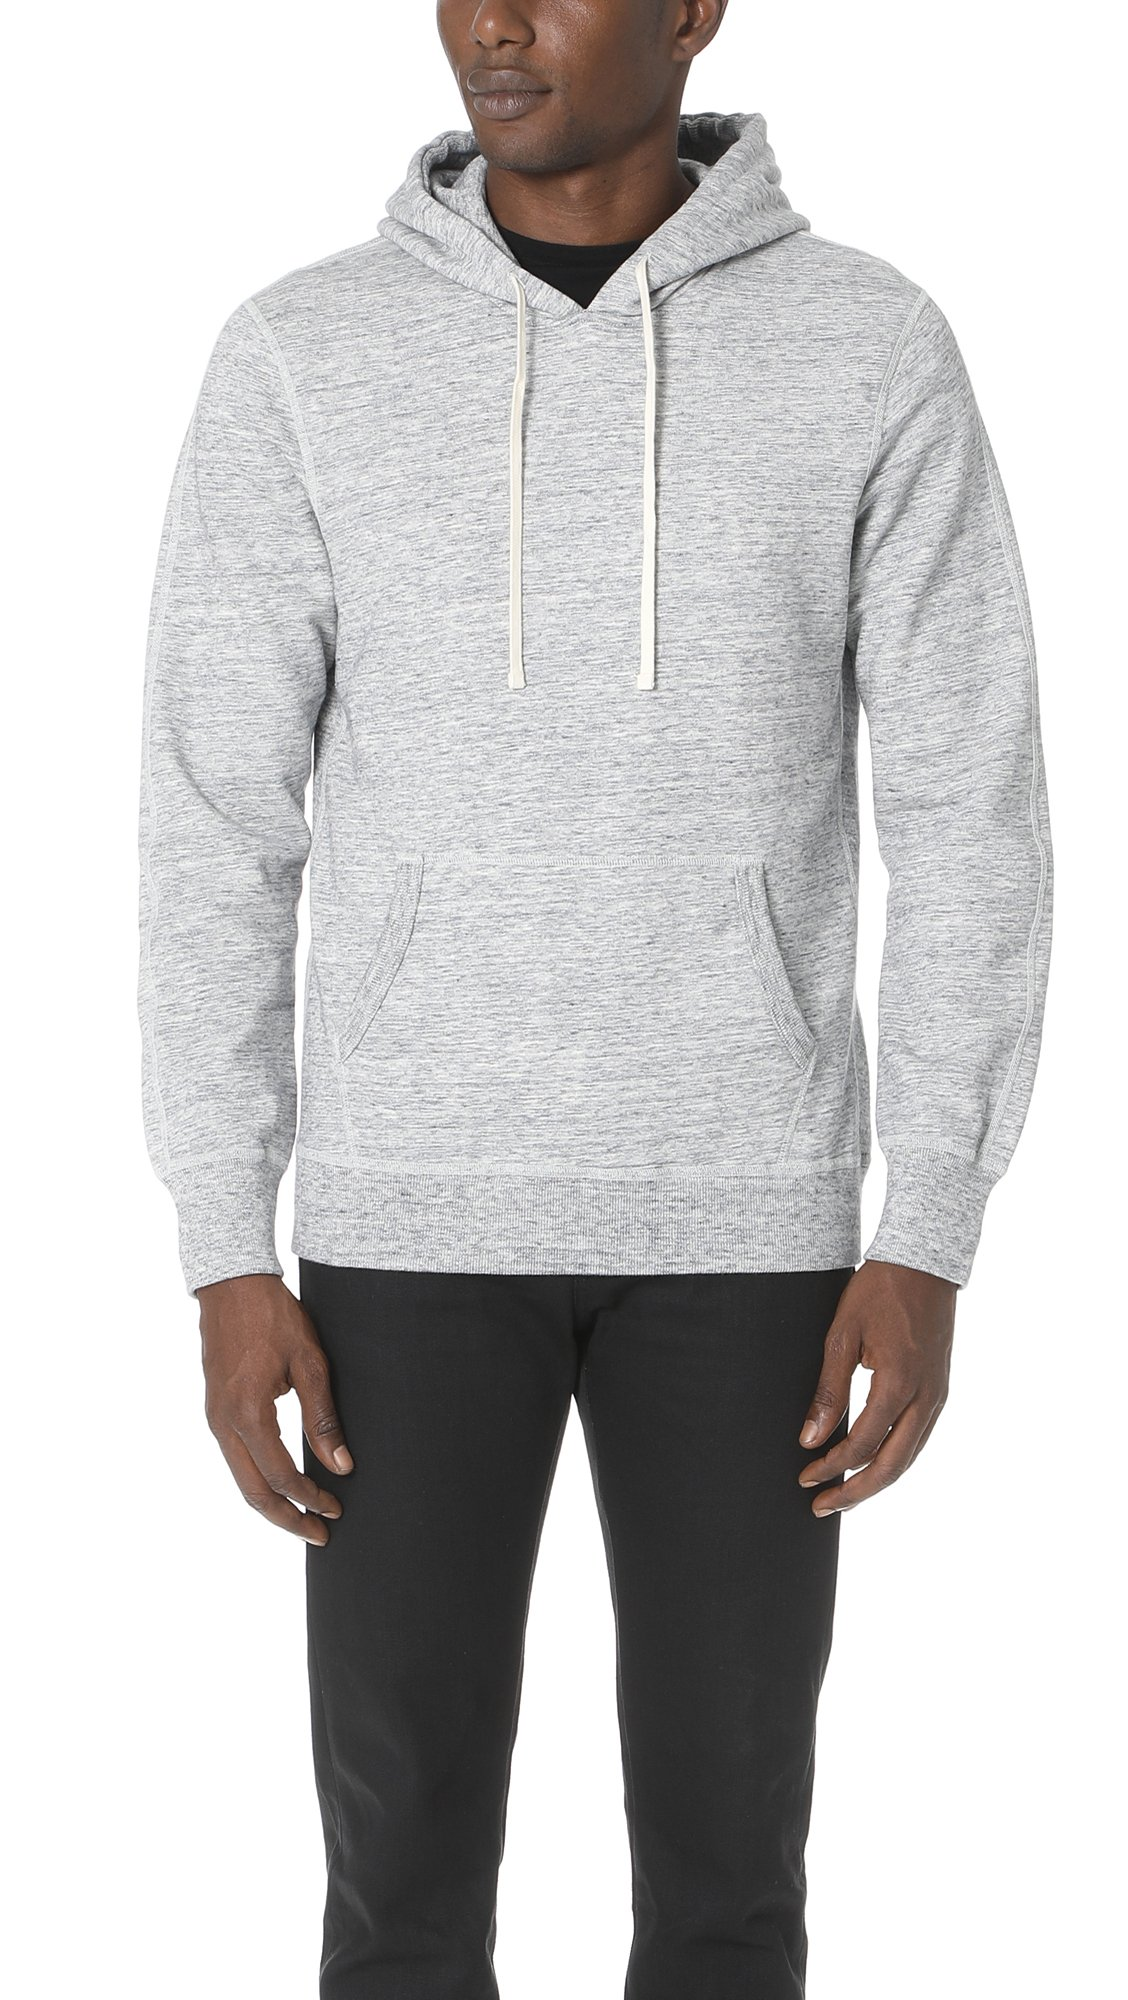 Reigning Champ Men's Mid Weight Pullover Hoodie, Ice, X-Large